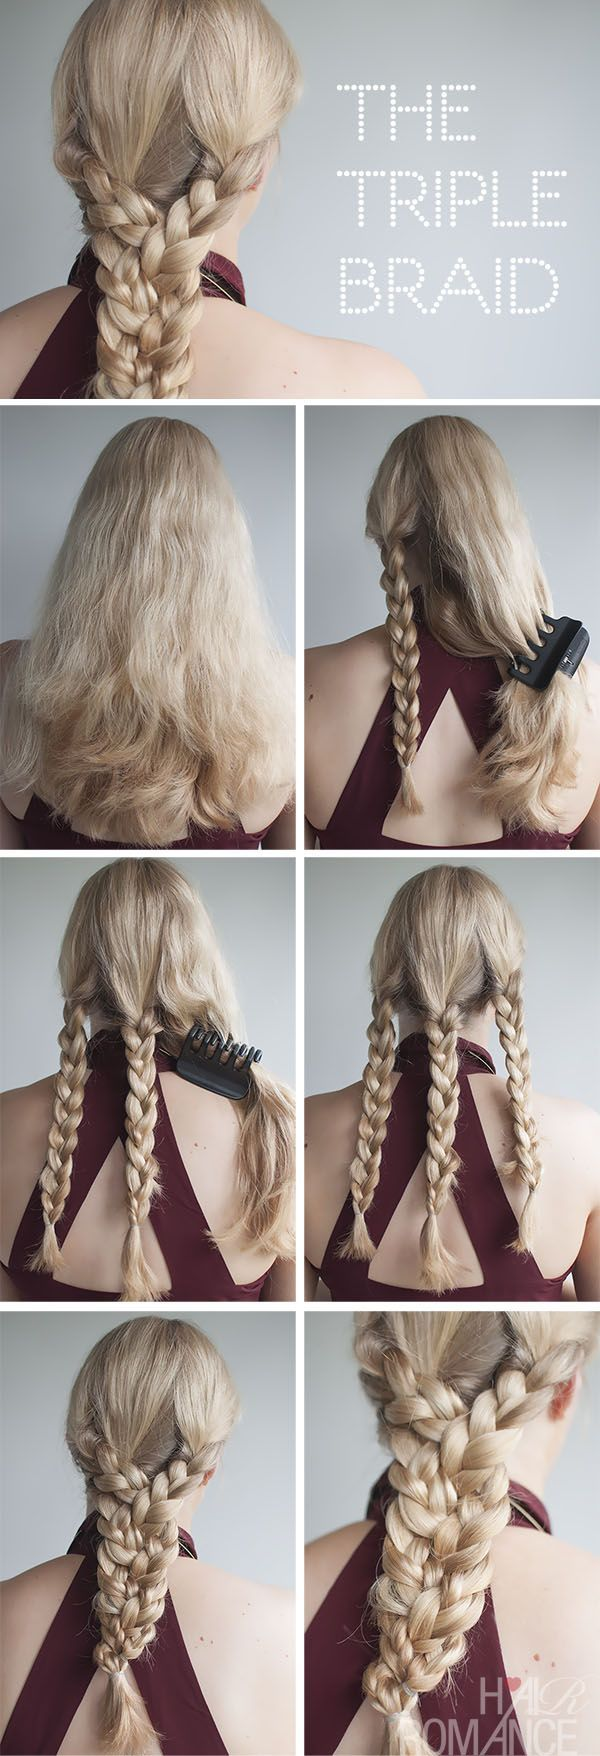 Will my hair ever get this long to be able to do this?